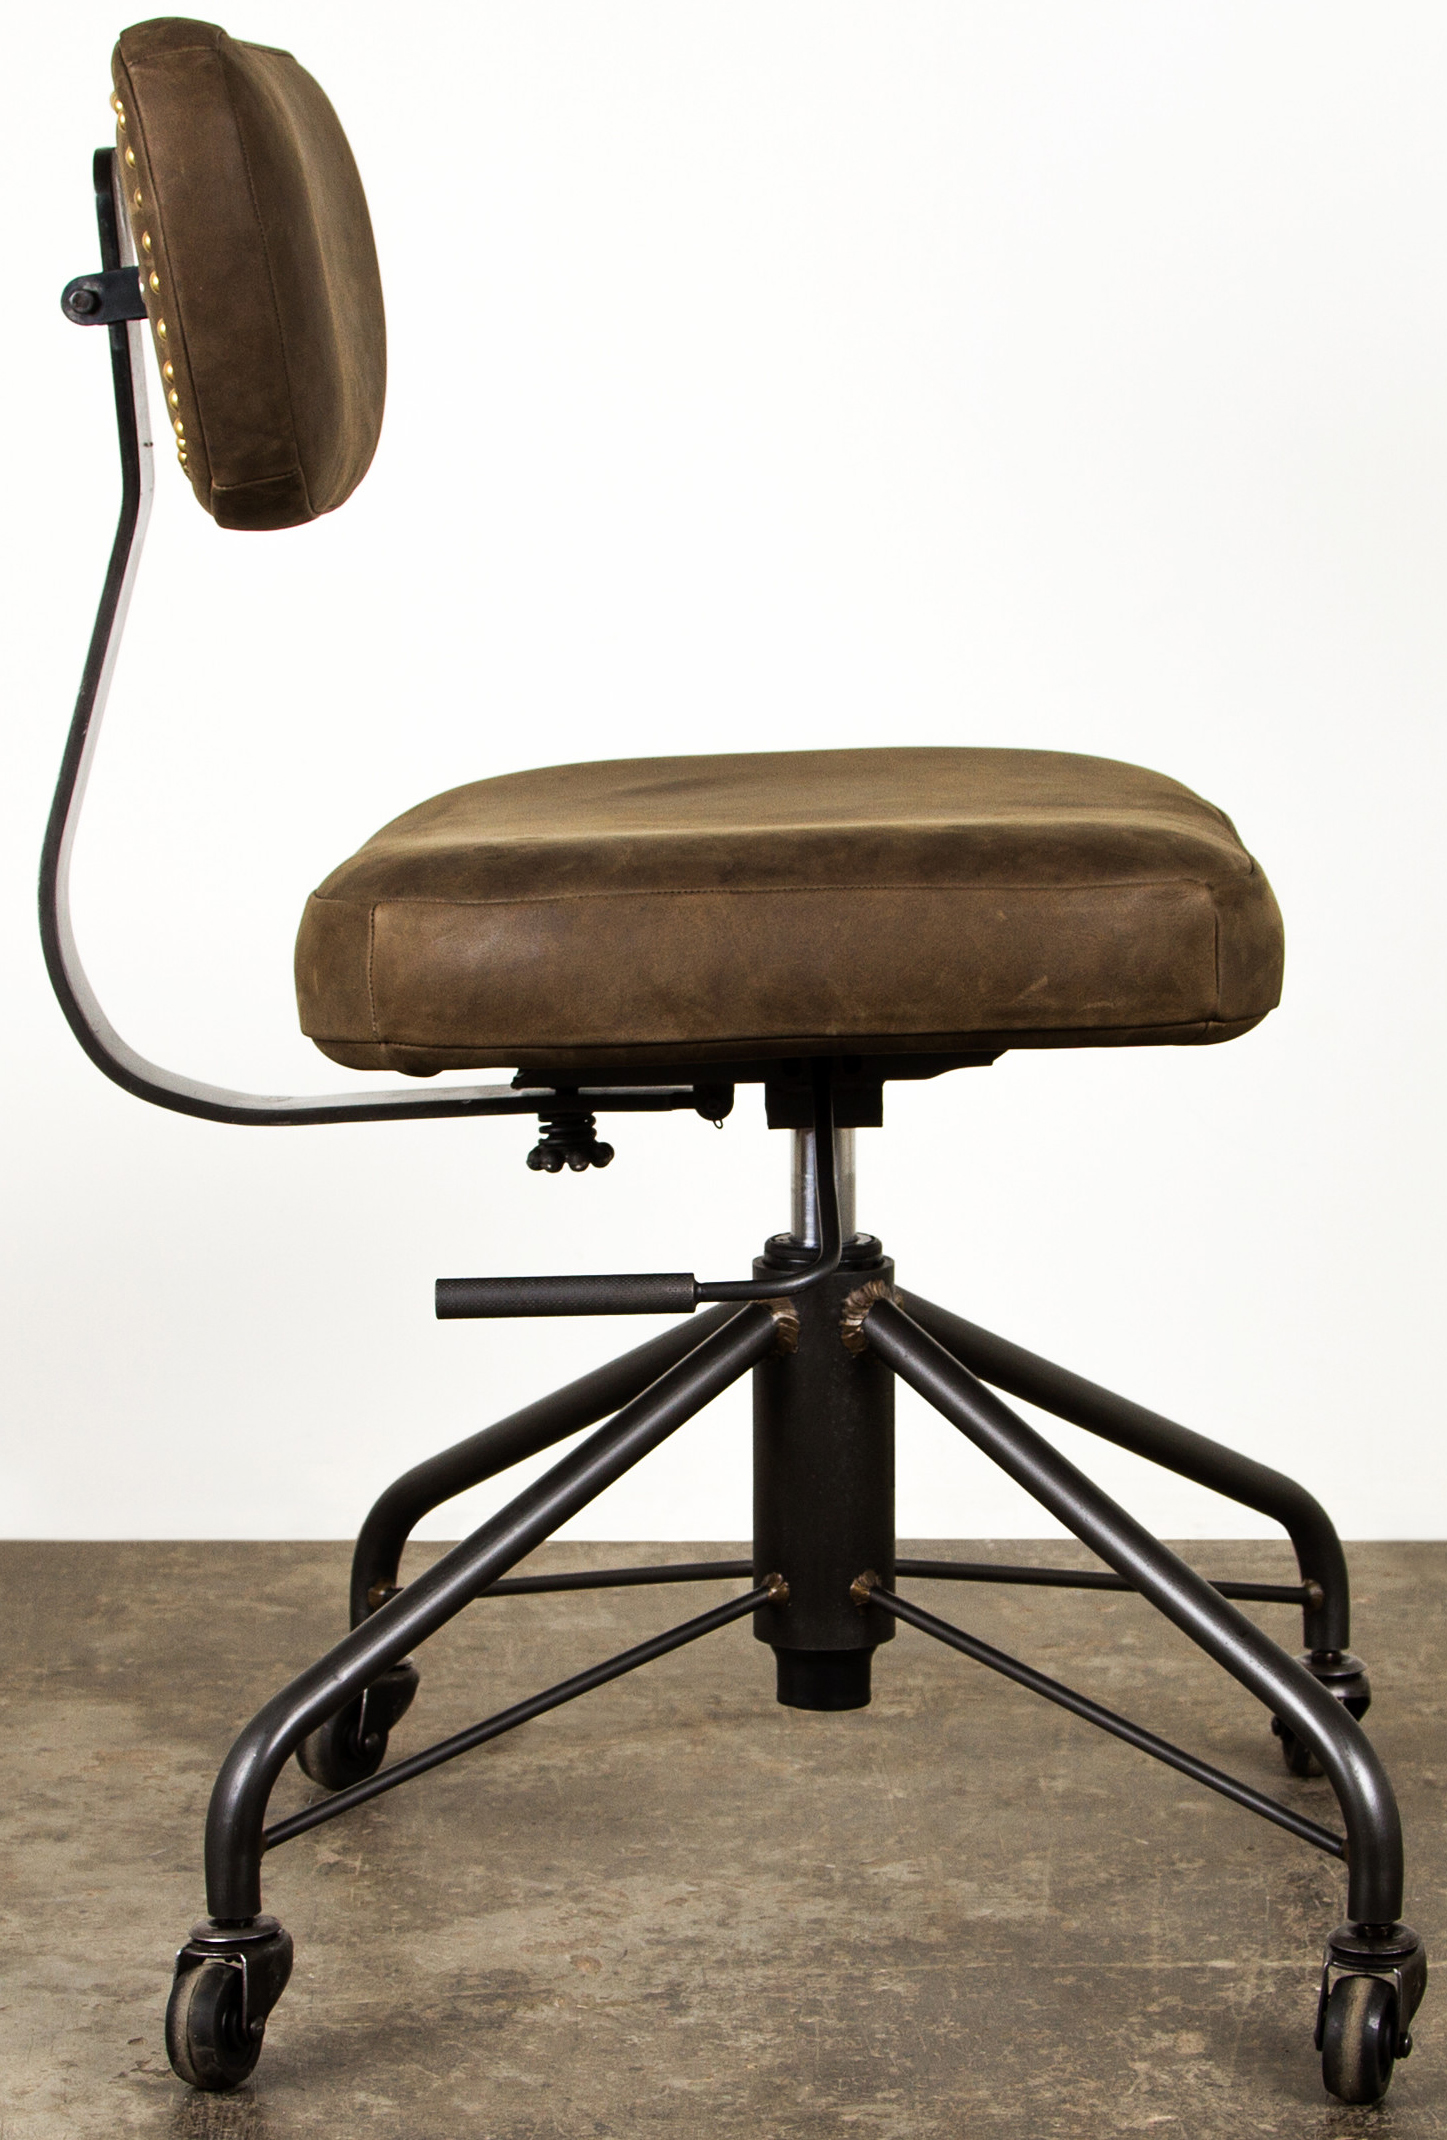 industrial style office chair. Price: Industrial Style Office Chair D